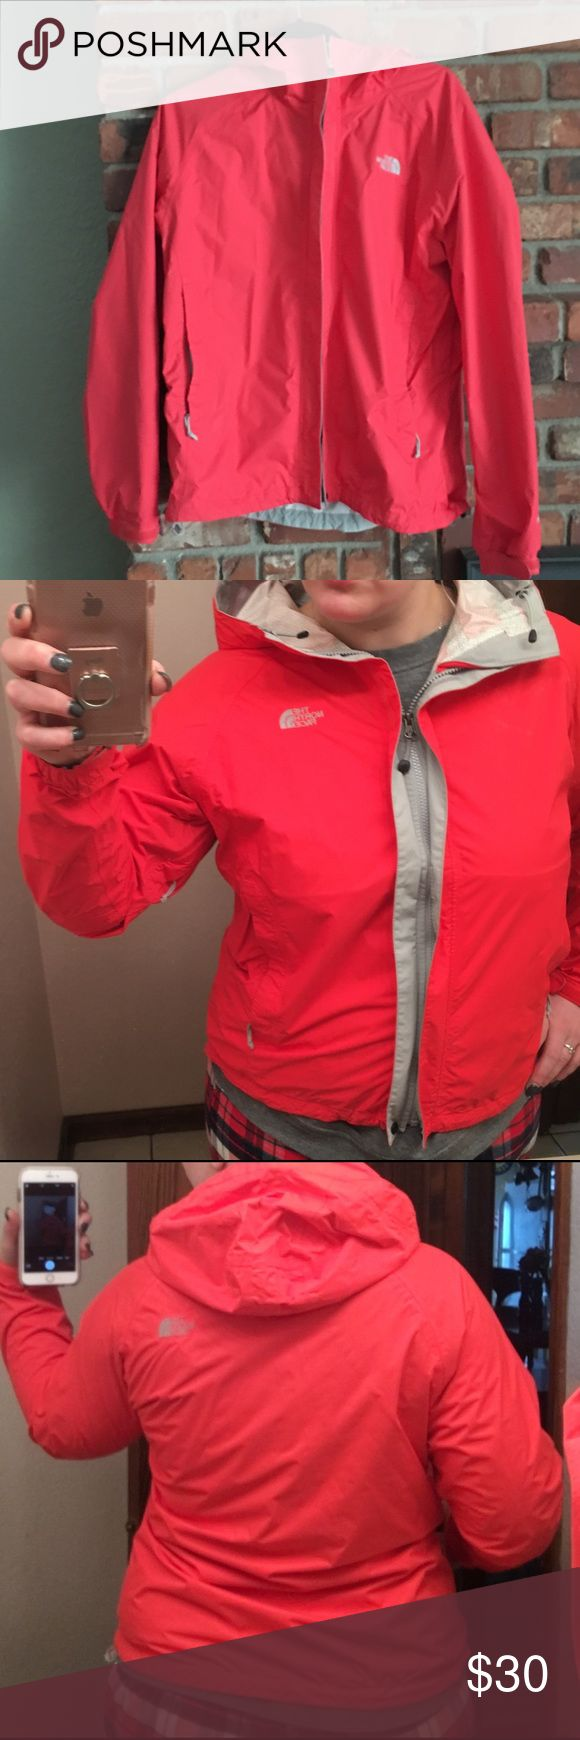 North Face rain jacket Packable lightweight rain coat. Great rain protection when worn alone or over another layer. In good shape, minus a small stain on the collar. The size has worn off the tag, but I am pretty sure it is an XL. Bright red color The North Face Jackets & Coats